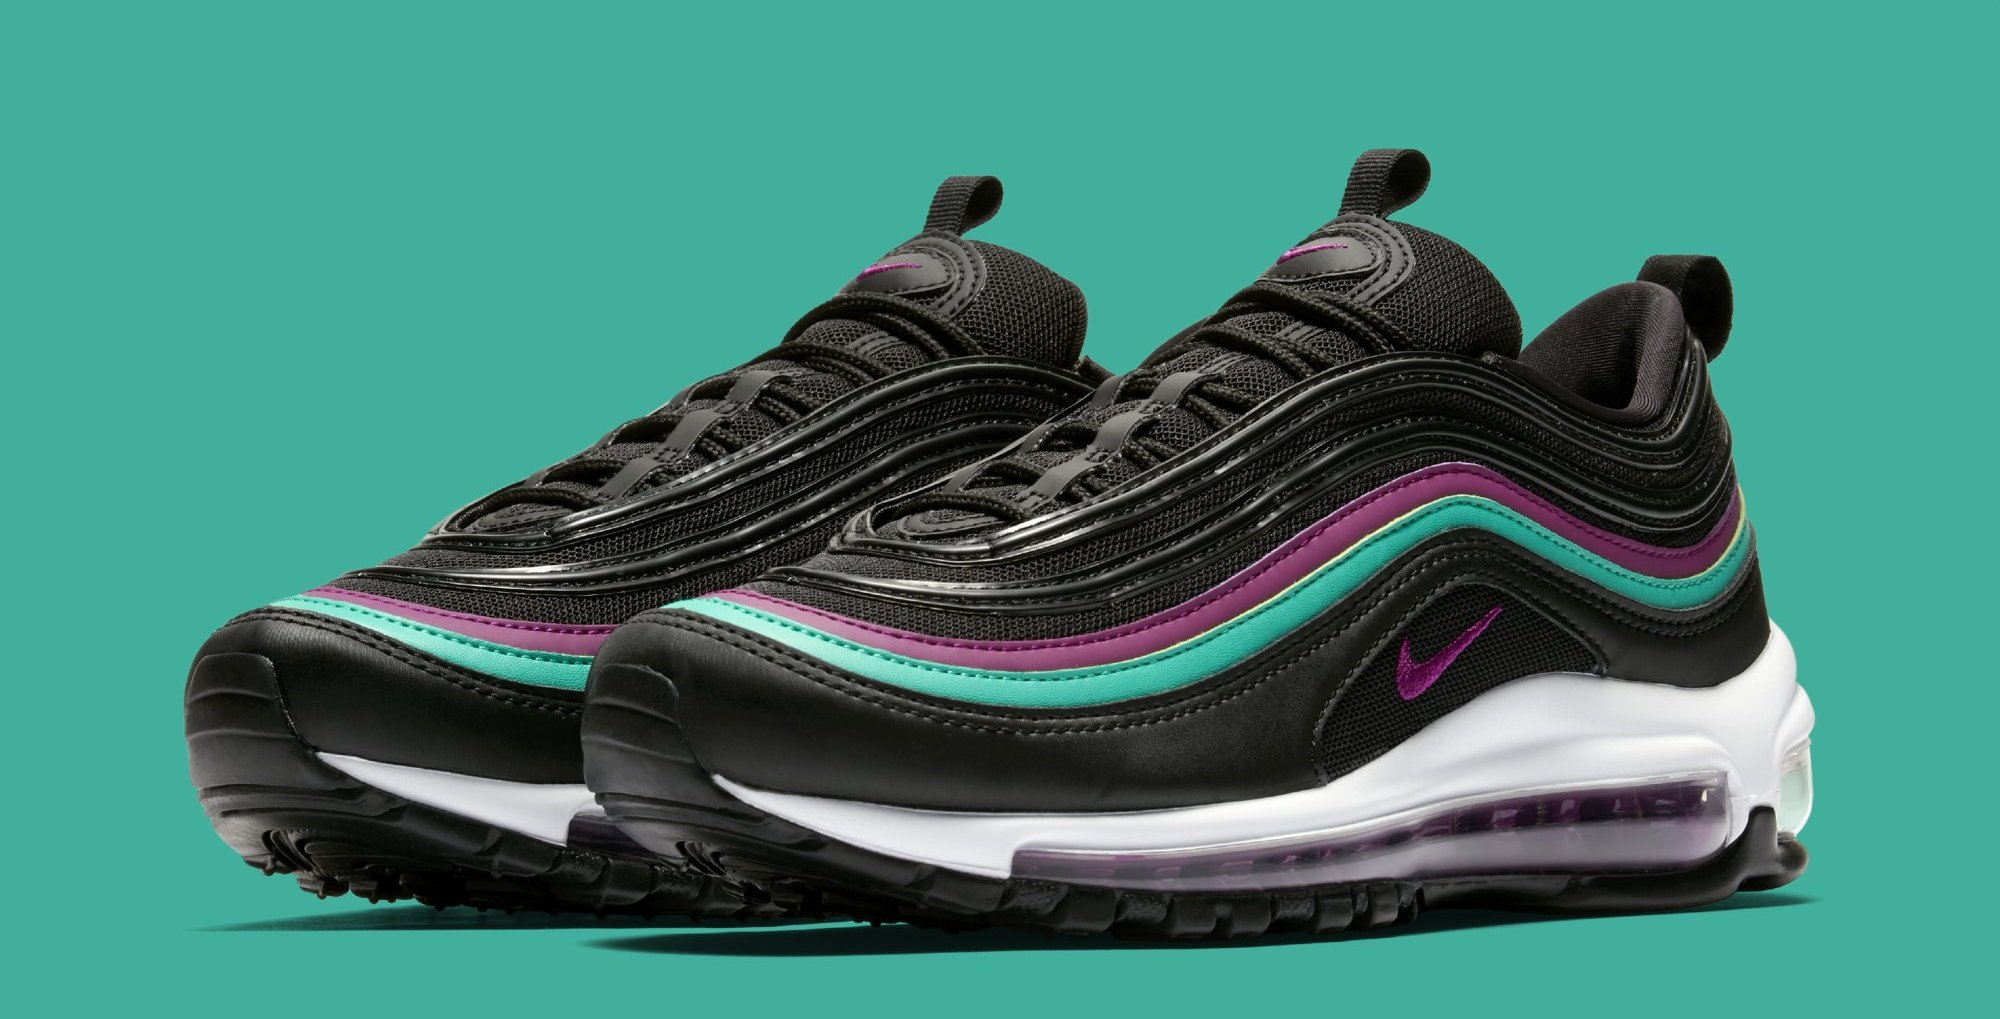 san francisco 2a438 68cd7 Nike Air Max 97 WMNS  Black Grape  921733-008 Sneaker Release Date   Sole  Collector